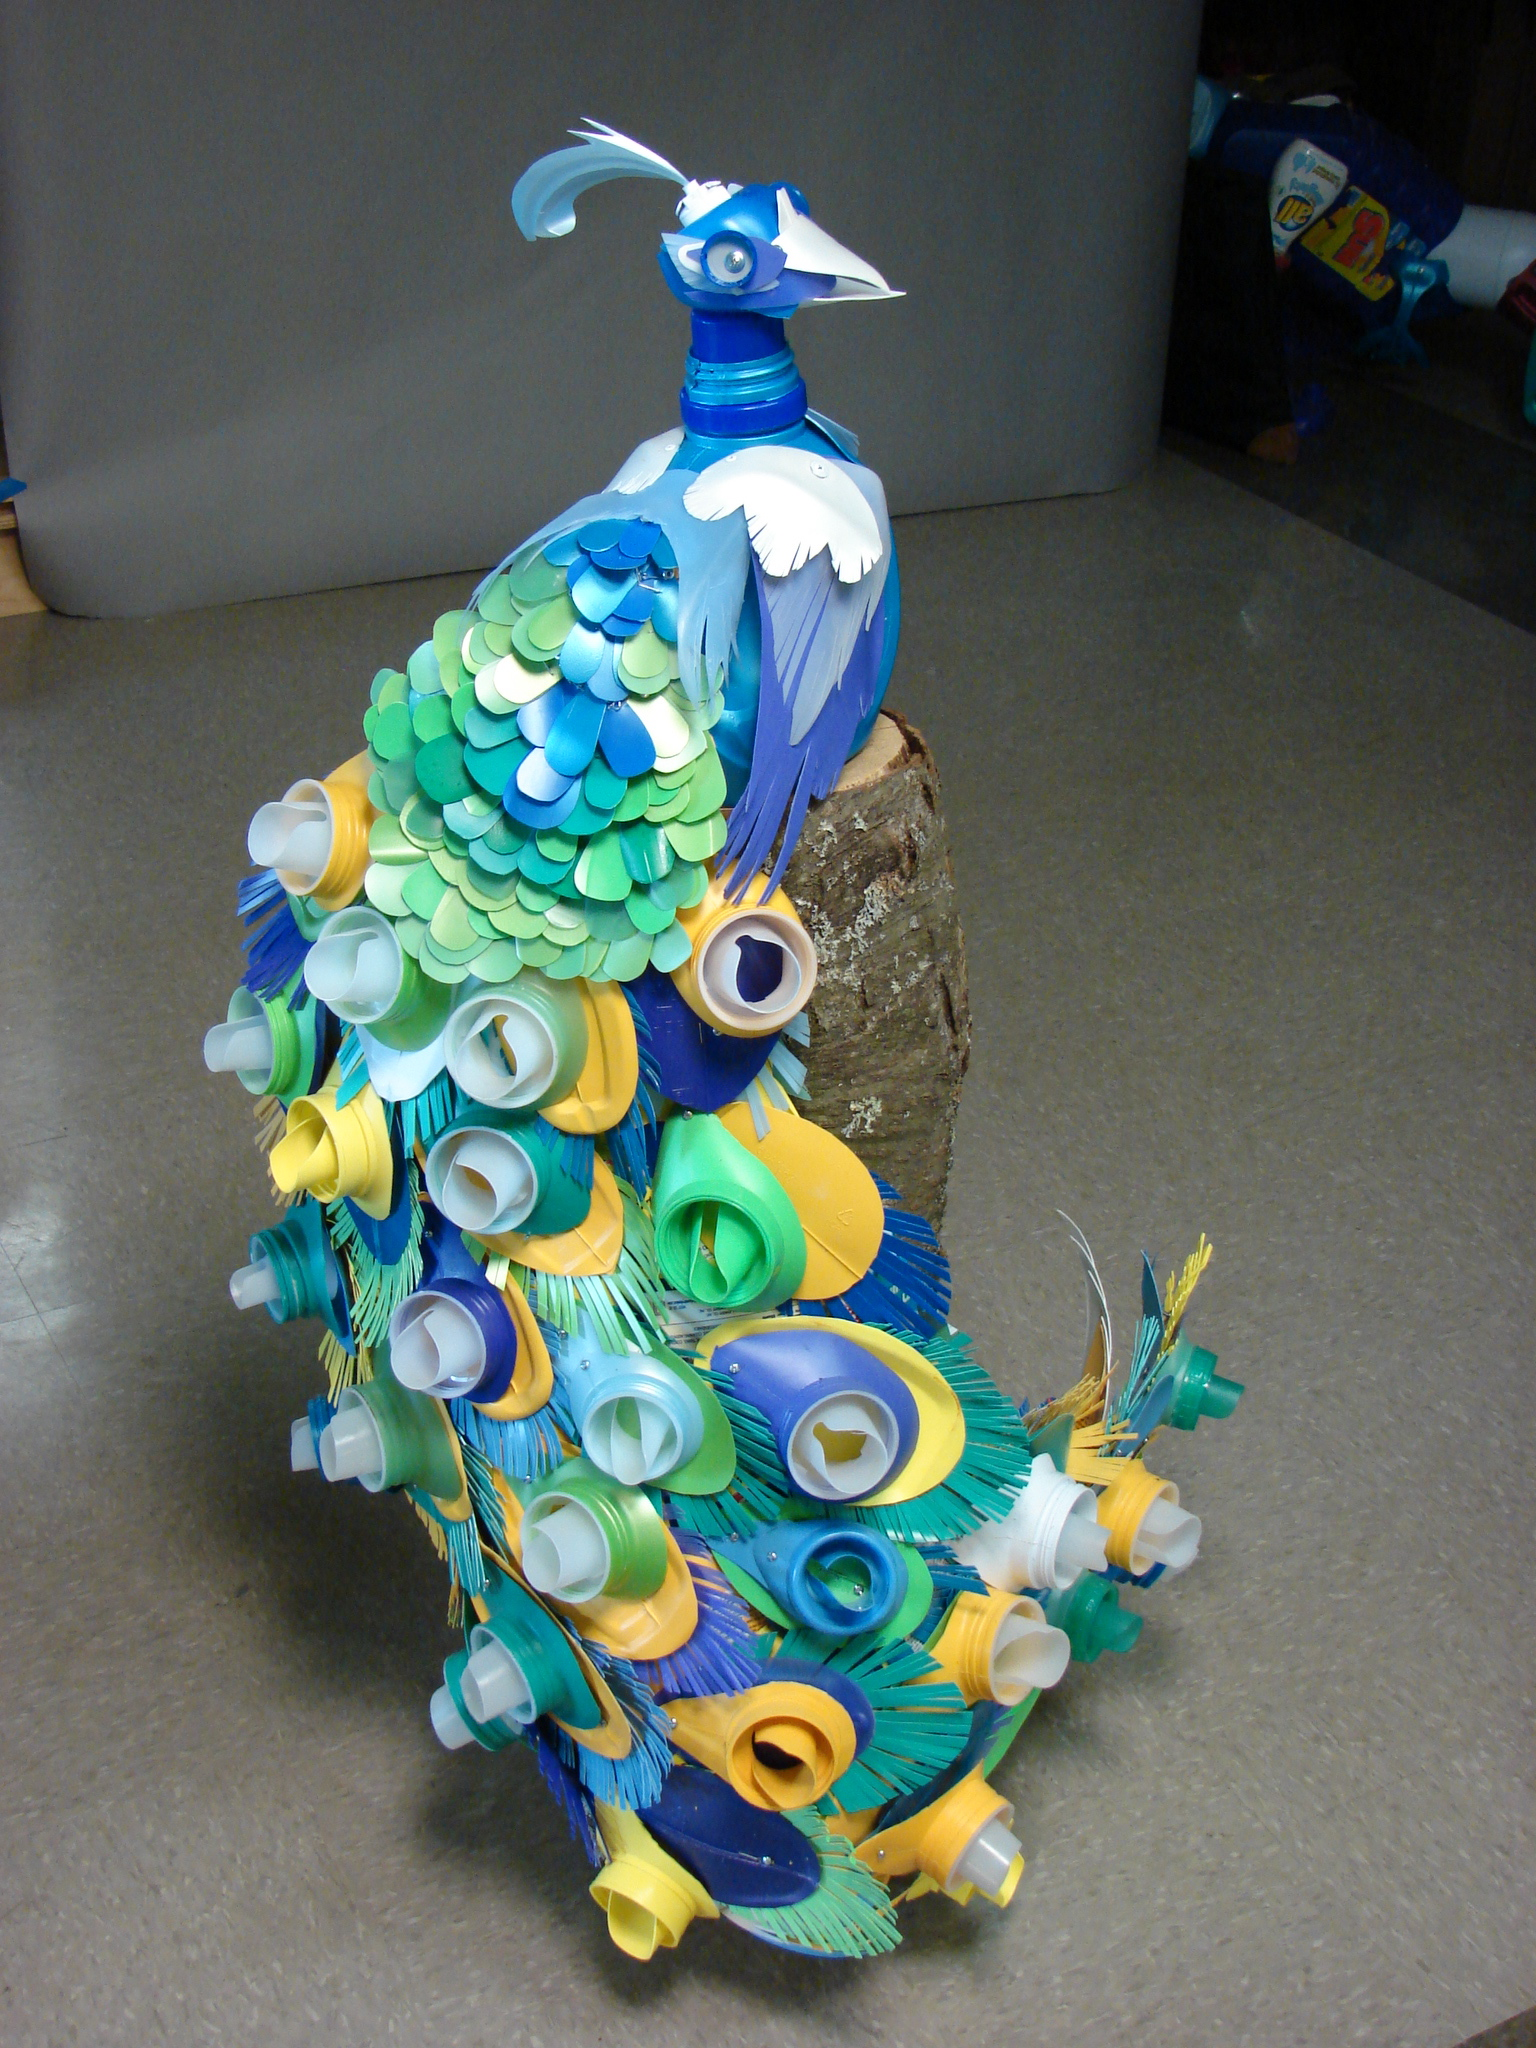 Janmashtami Home Decoration Artwork Peacock Made From Recycled Plastic One Island